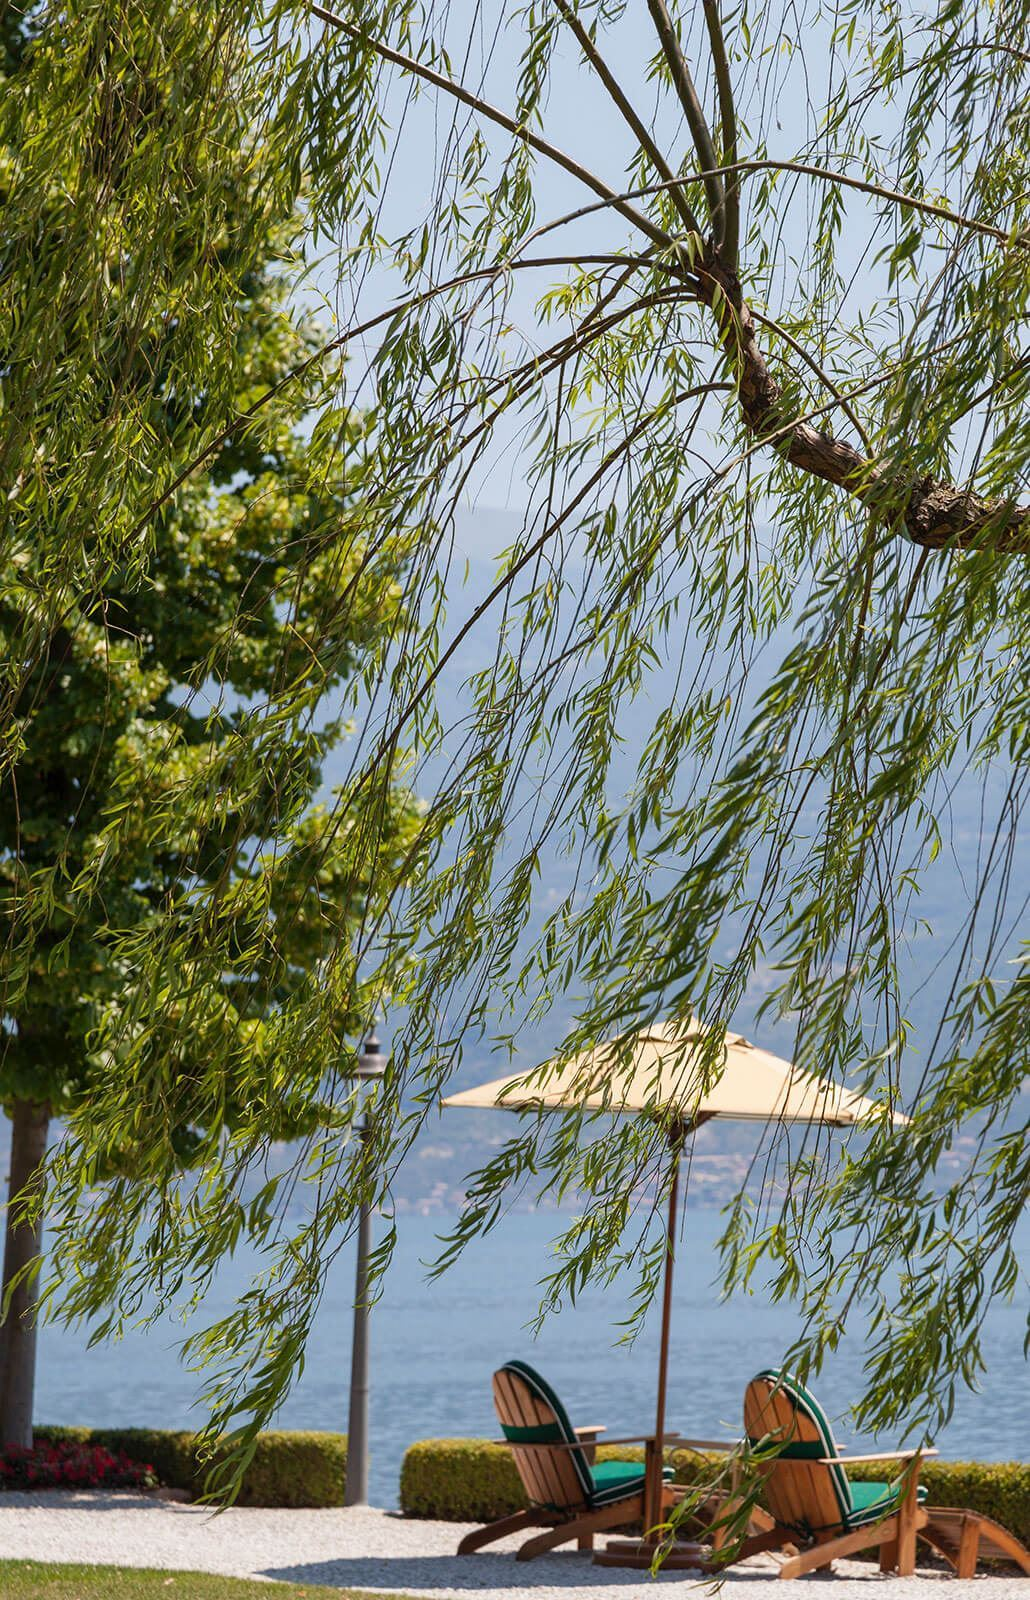 Grand-Hotel-Villa-Feltrinelli-Lake-Garda-06-a mild climate that always offers fascinating landscapes